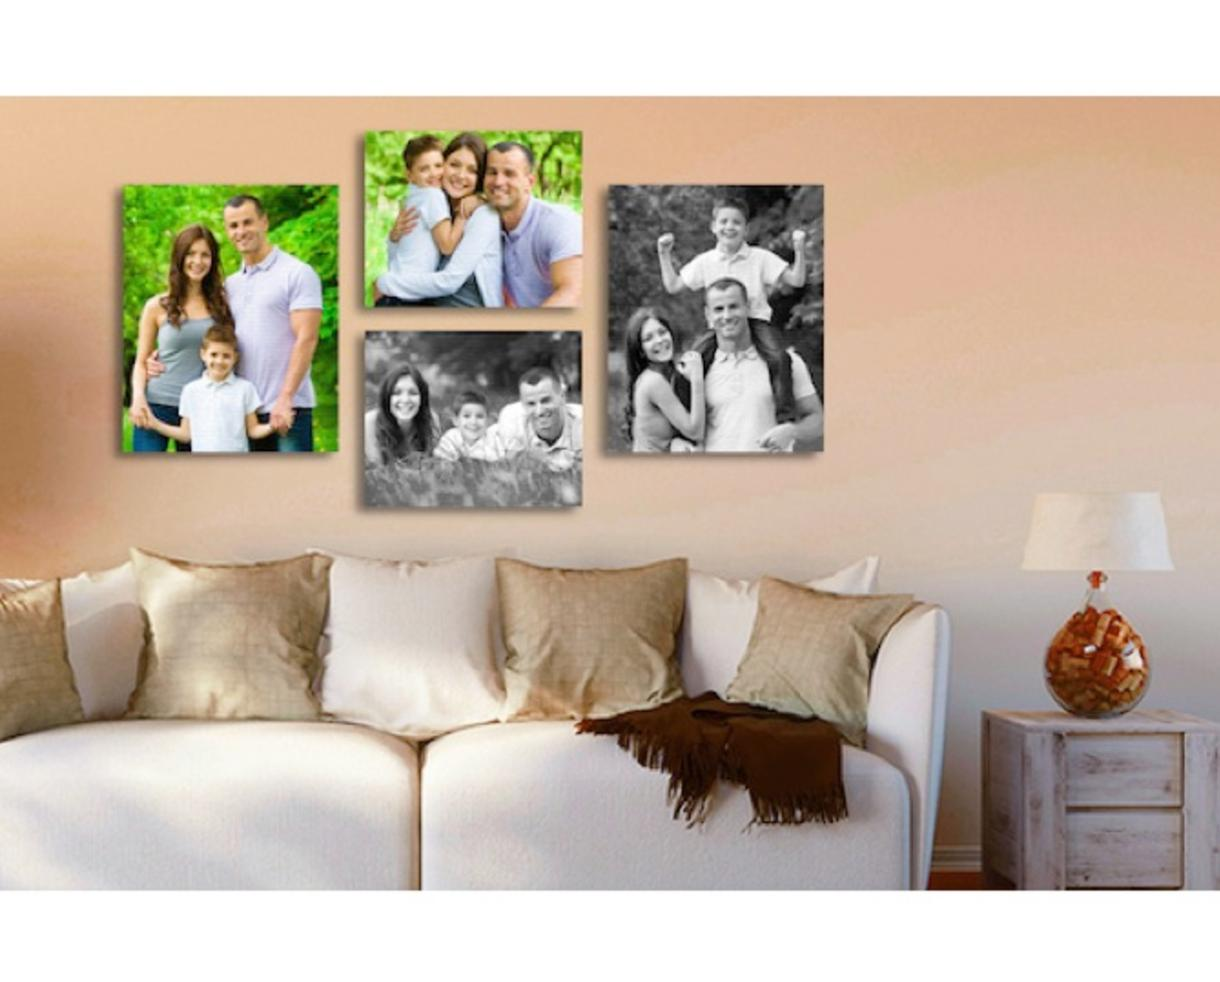 deal 22 for 16x20 canvas print from picture it on canvas 110